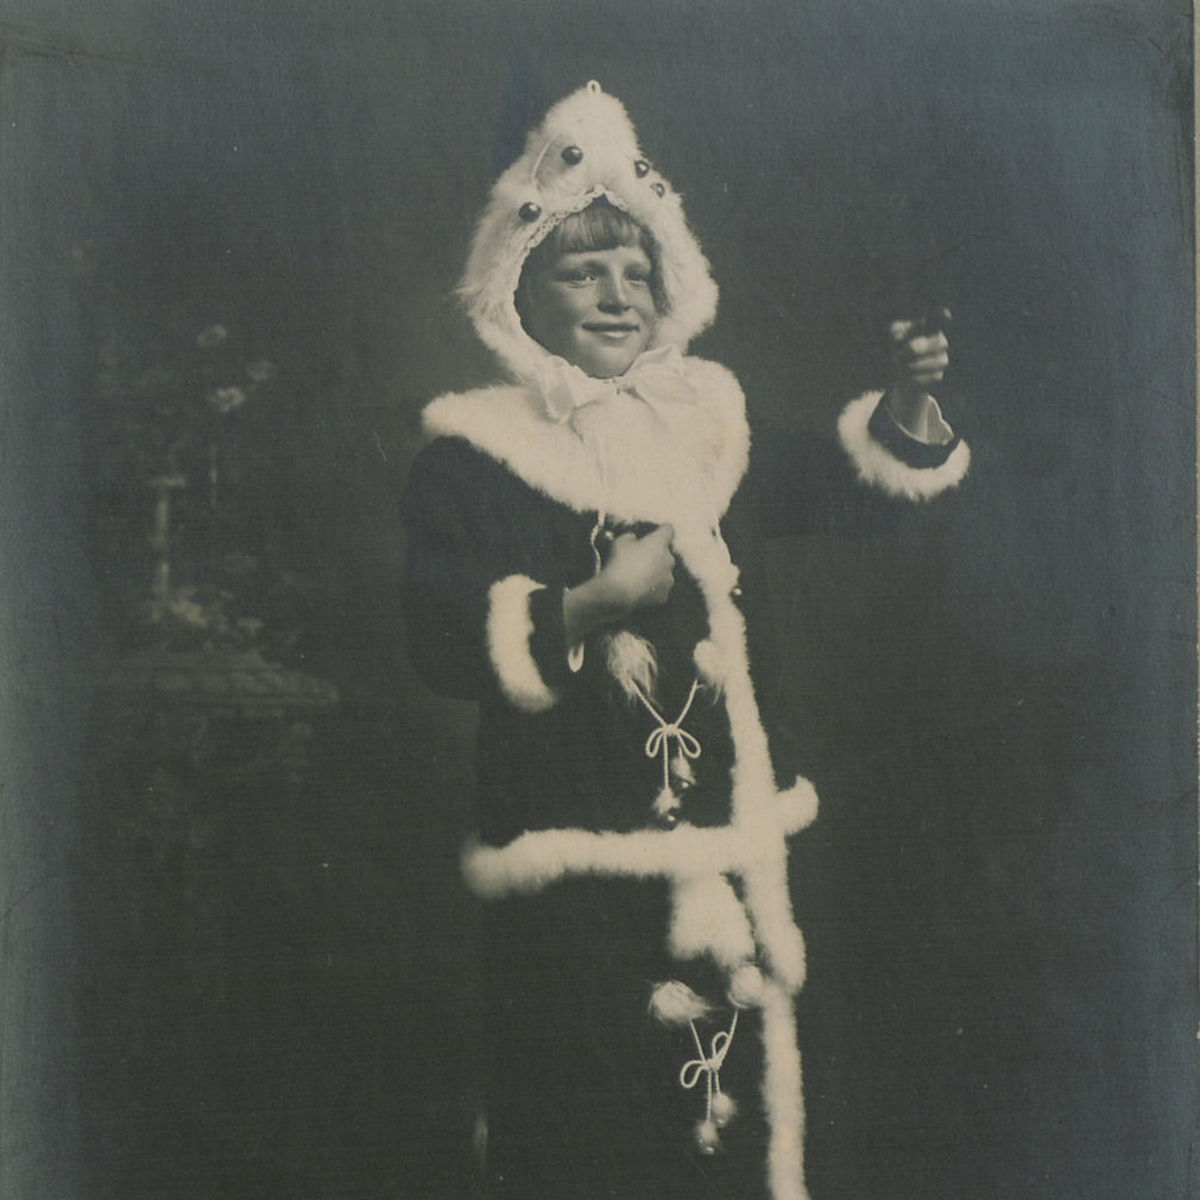 A girl dressed as Santa in 1915.